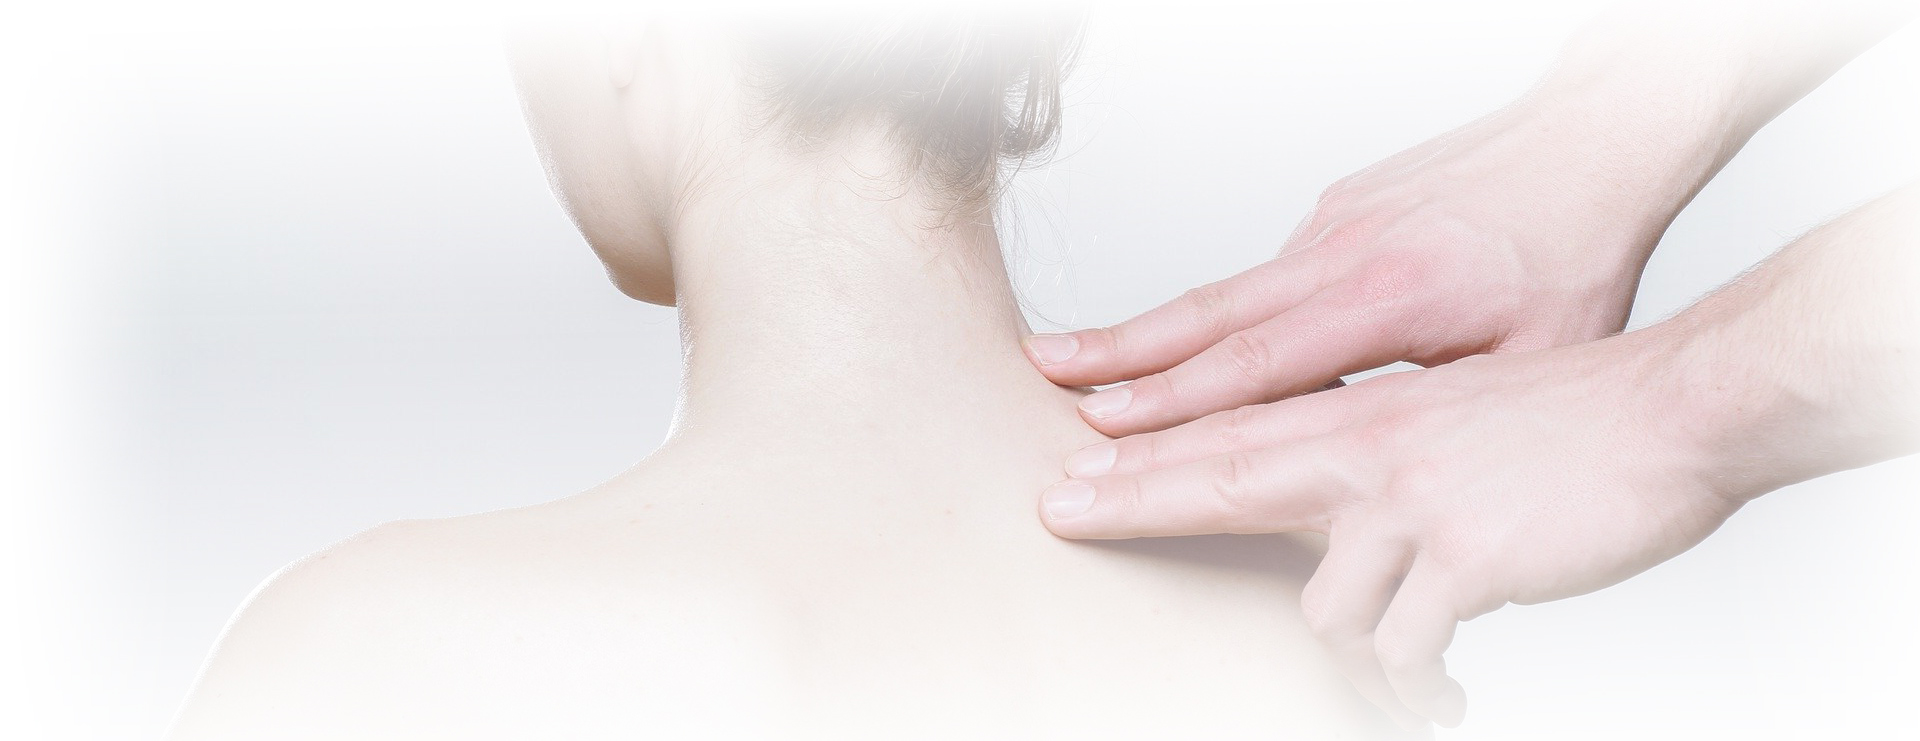 Acupressure to Boost Immunity